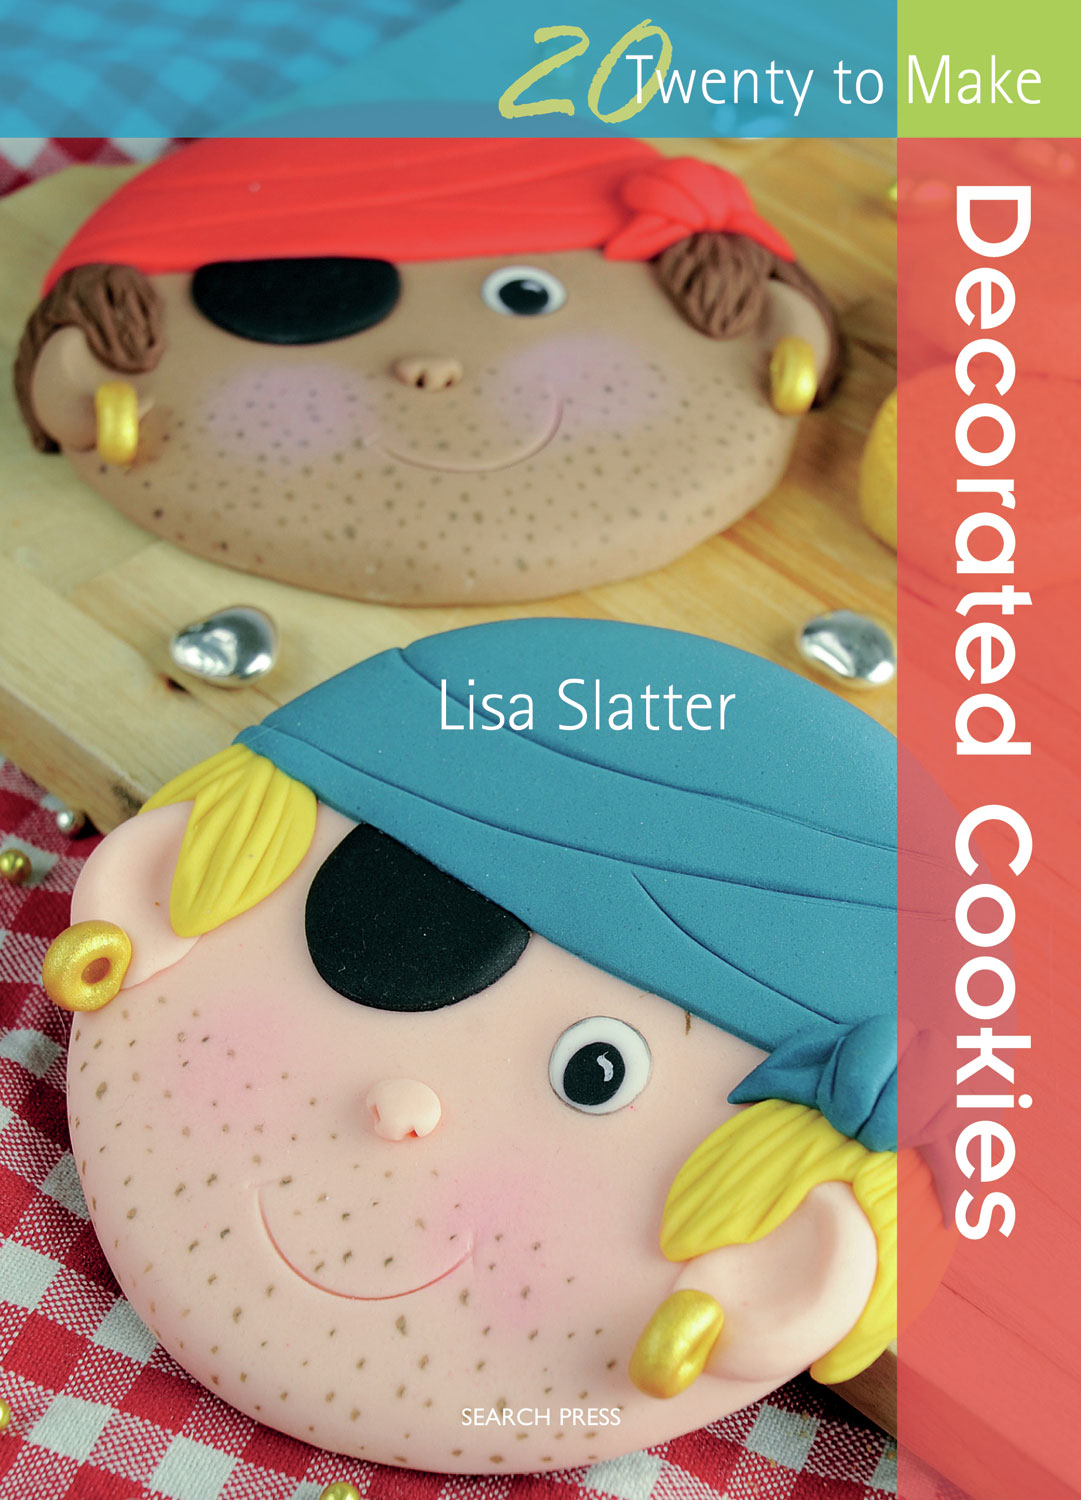 Decorated Cookies By: Lisa Slatter